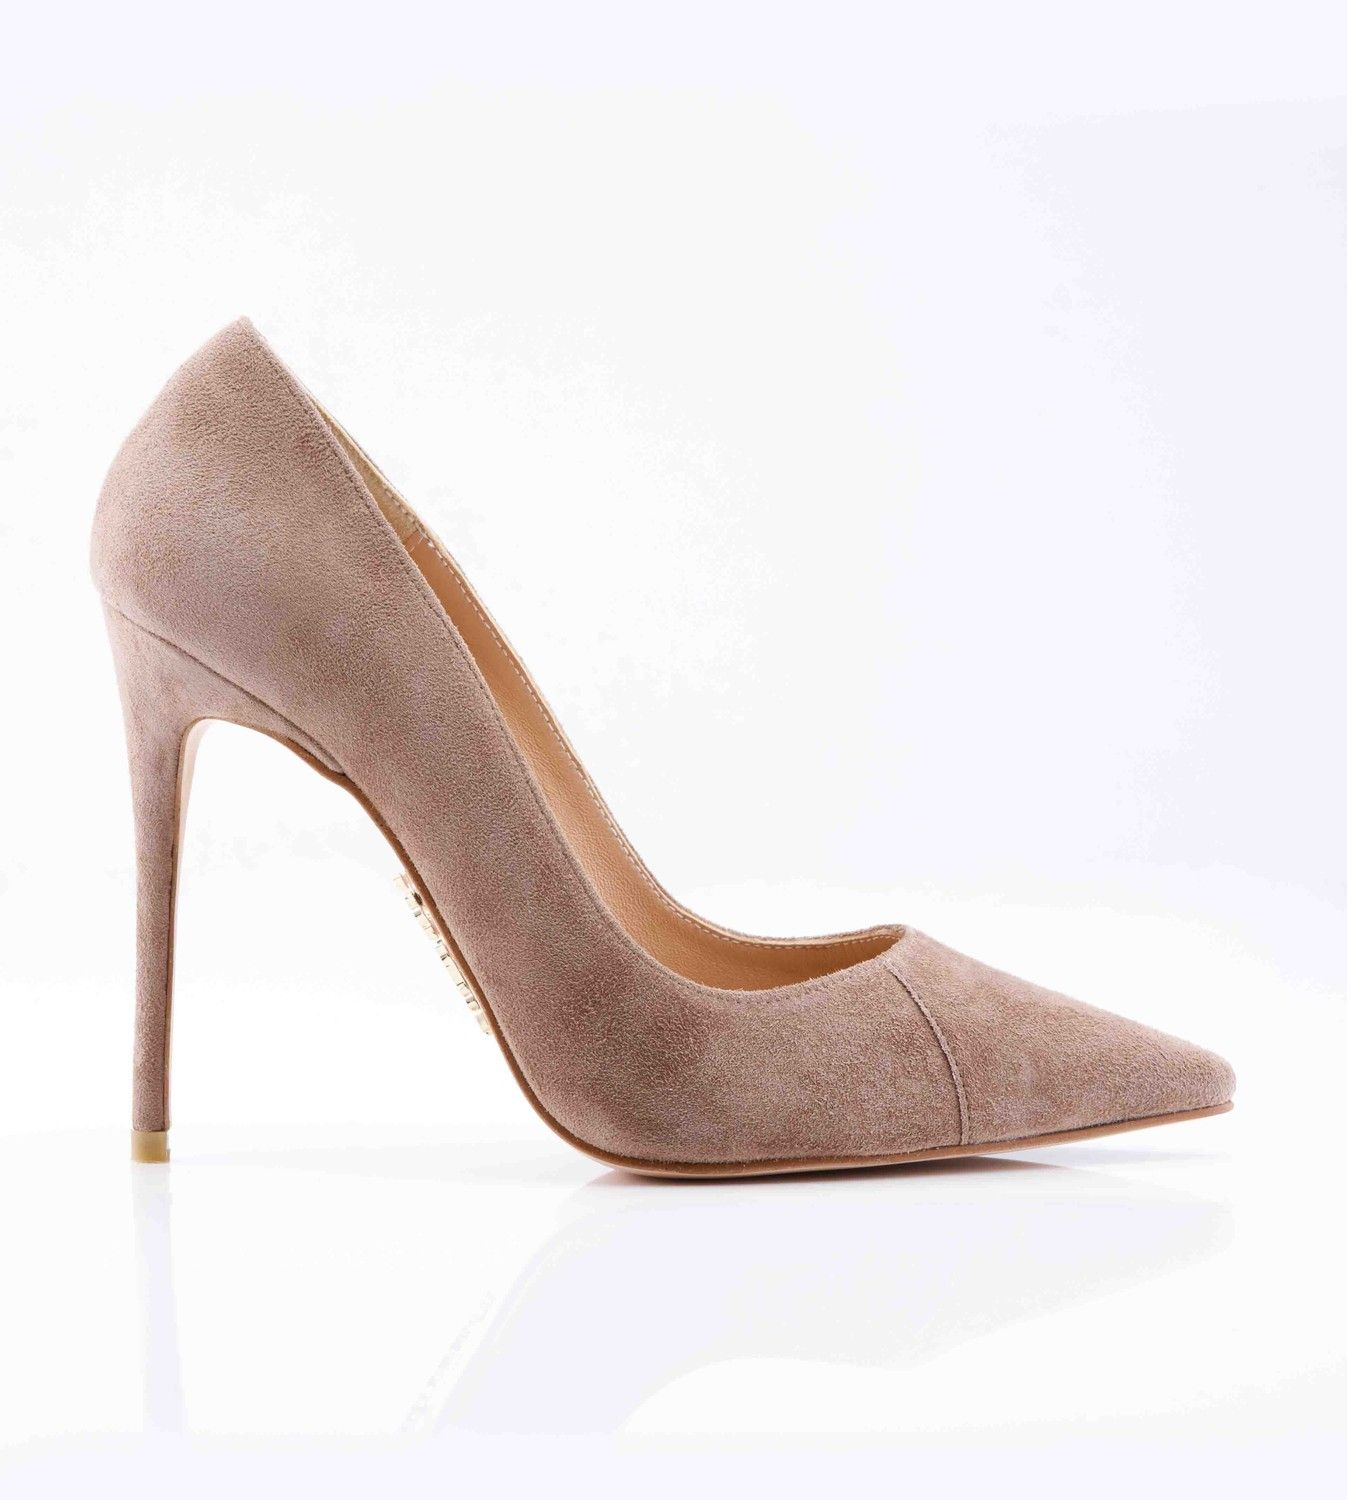 2c620b7db8bc Shoes   PARIS  Suede Mocha Patent Leather Pointy Toe Heels 5 ...